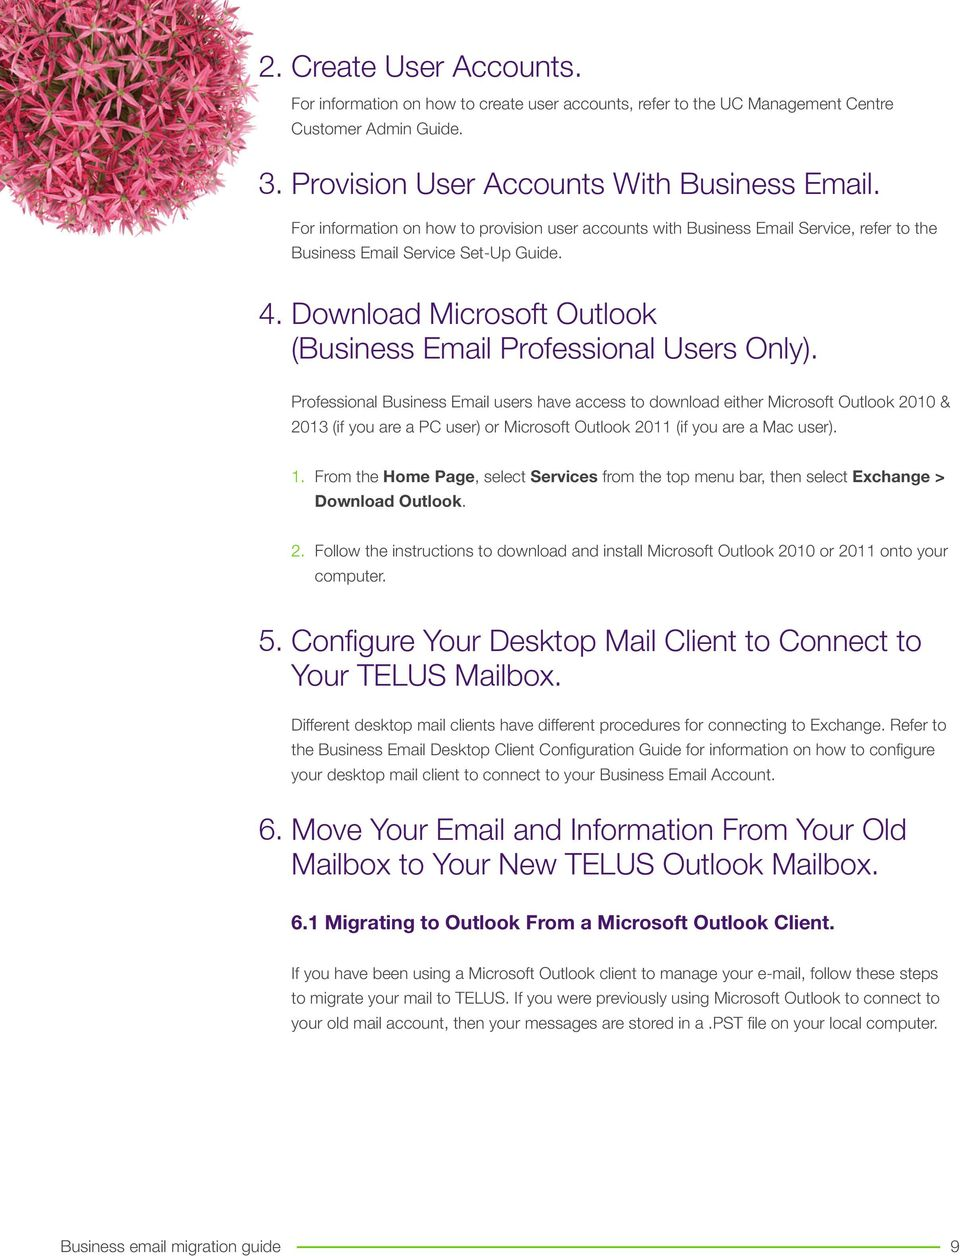 Professional Business Email users have access to download either Microsoft Outlook 2010 & 2013 (if you are a PC user) or Microsoft Outlook 2011 (if you are a Mac user). 1.